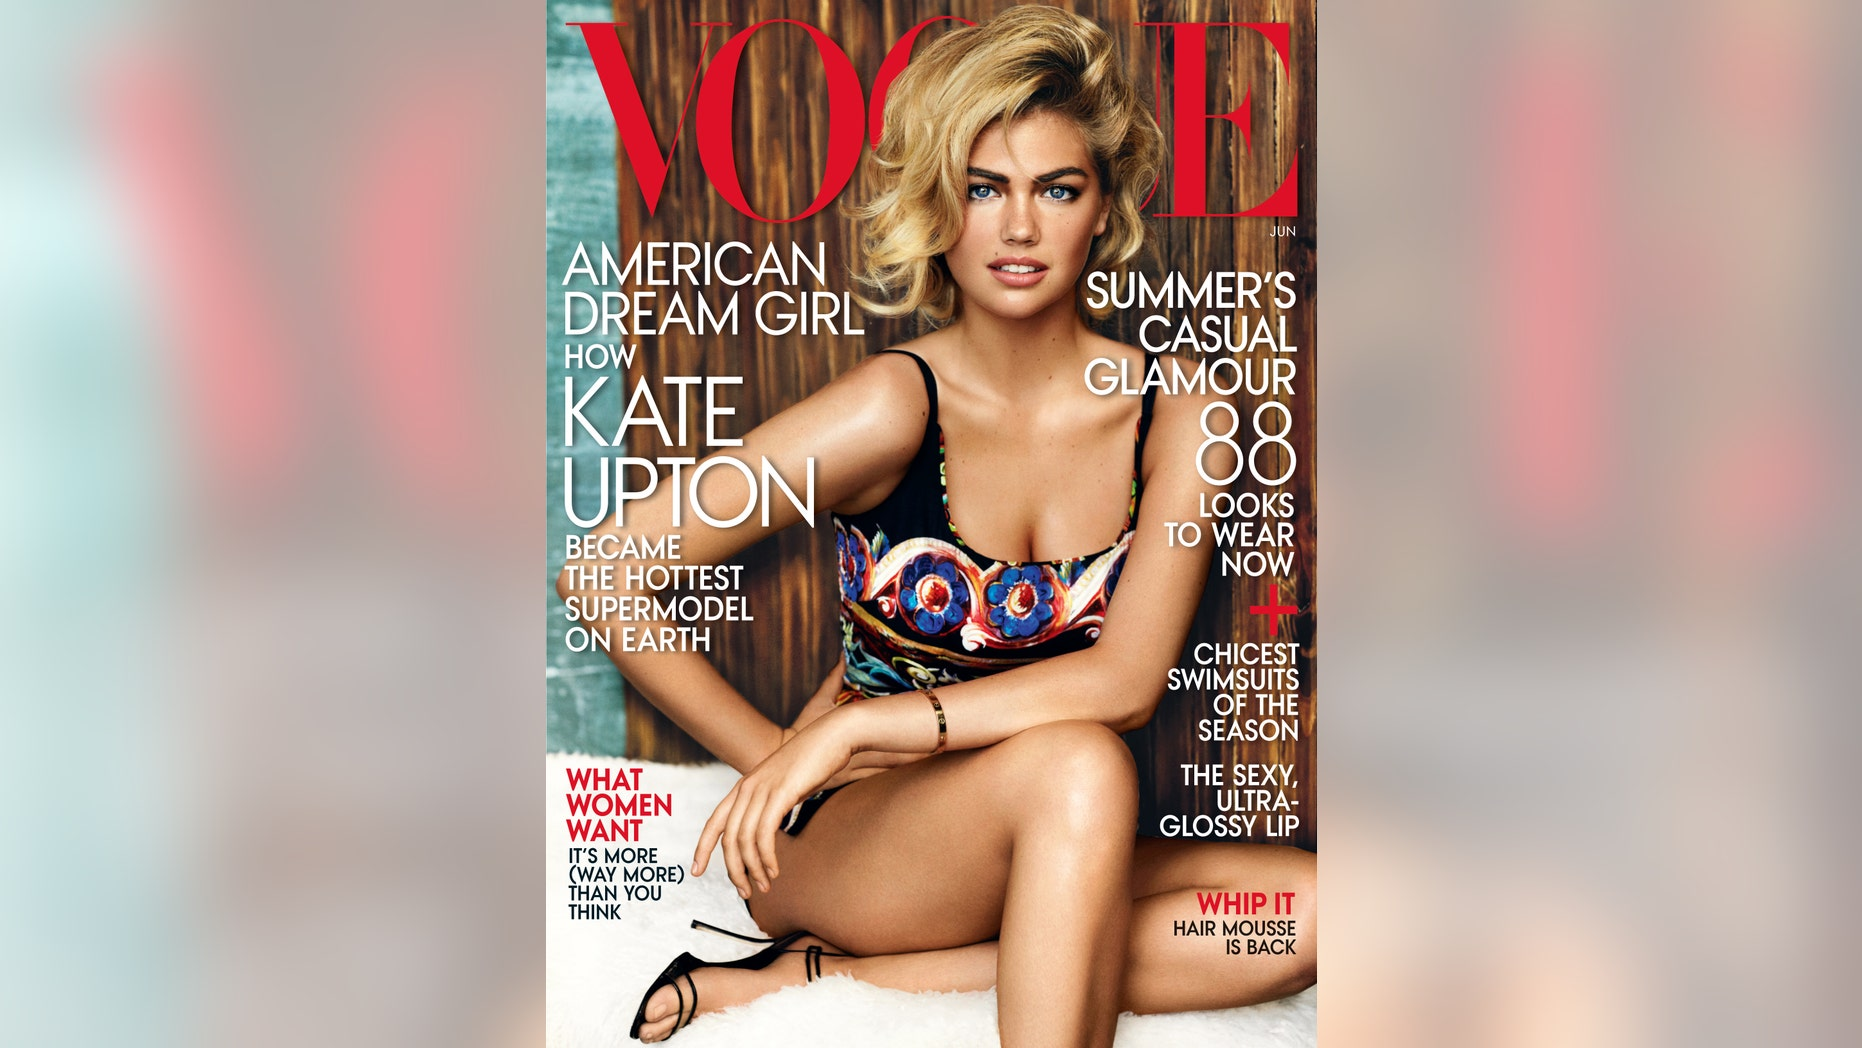 CORRECTS SPELLING TO GRACES - In this image released by Vogue, model Kate Upton graces the cover of the June 2013 issue. (AP Photo/Vogue)